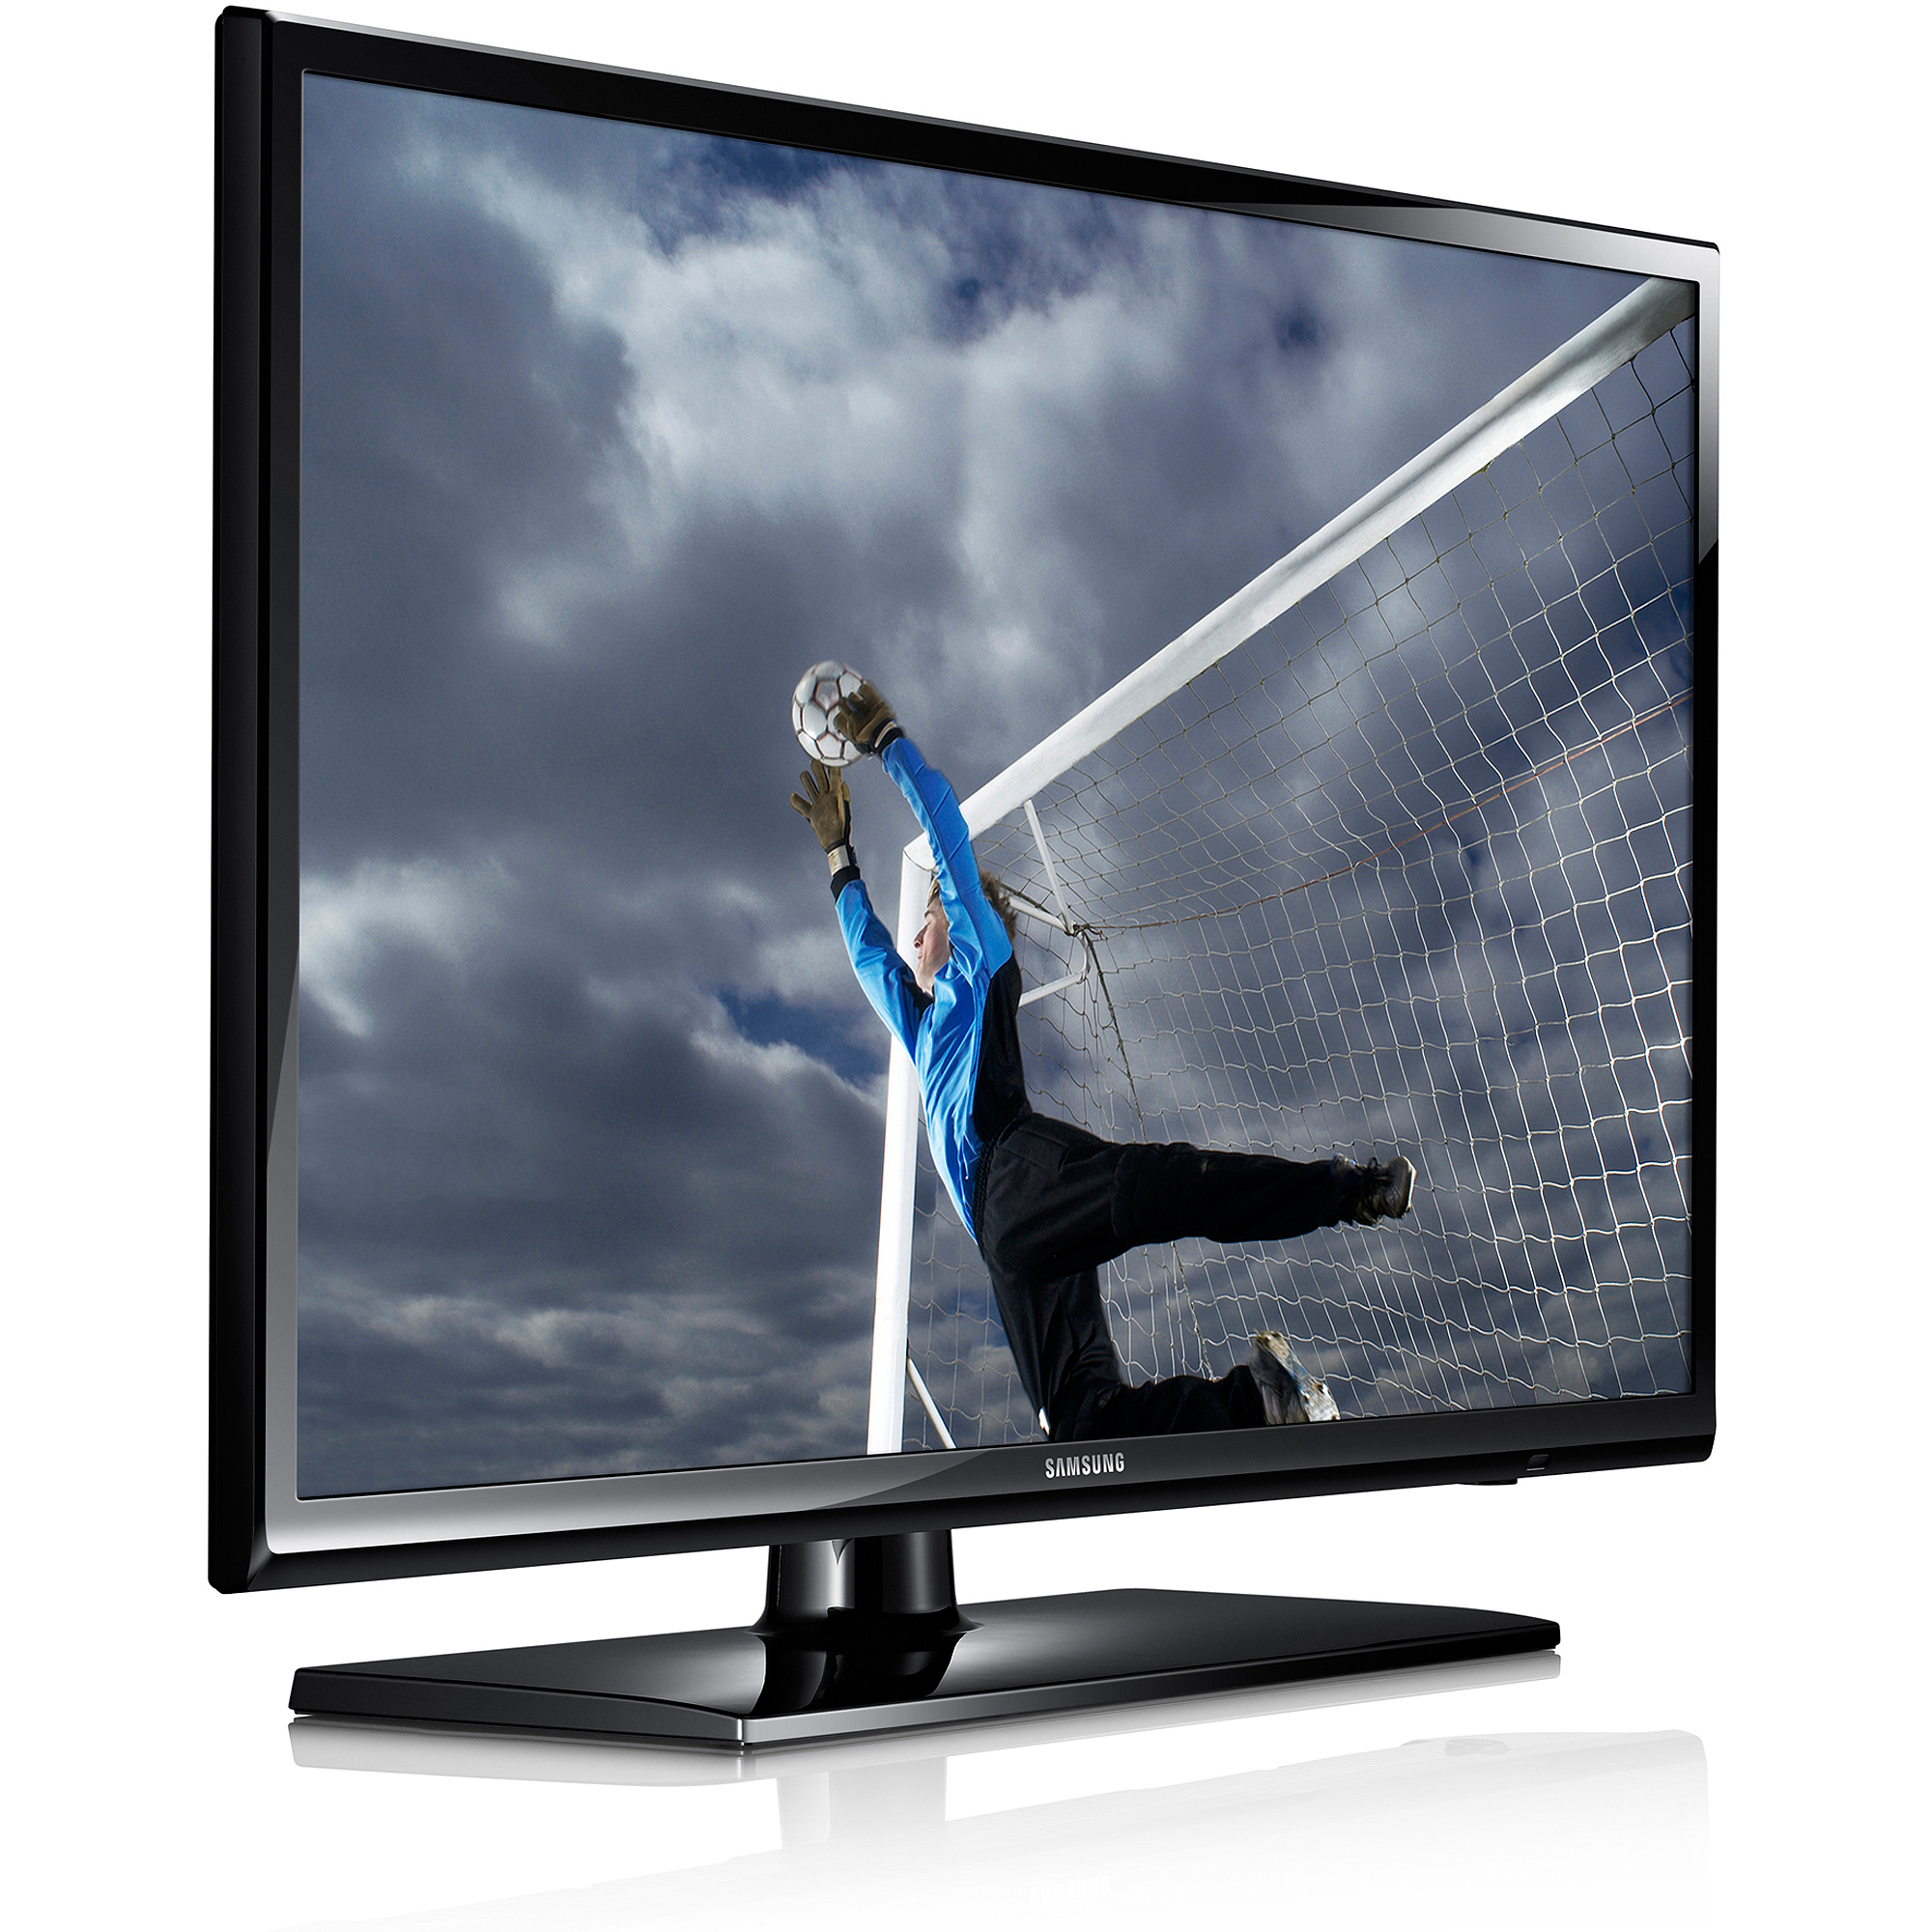 "SAMSUNG 40"" 5003 Series - Full HD LED TV - 1080p, 60MR (Model#:UN40H5003A)"